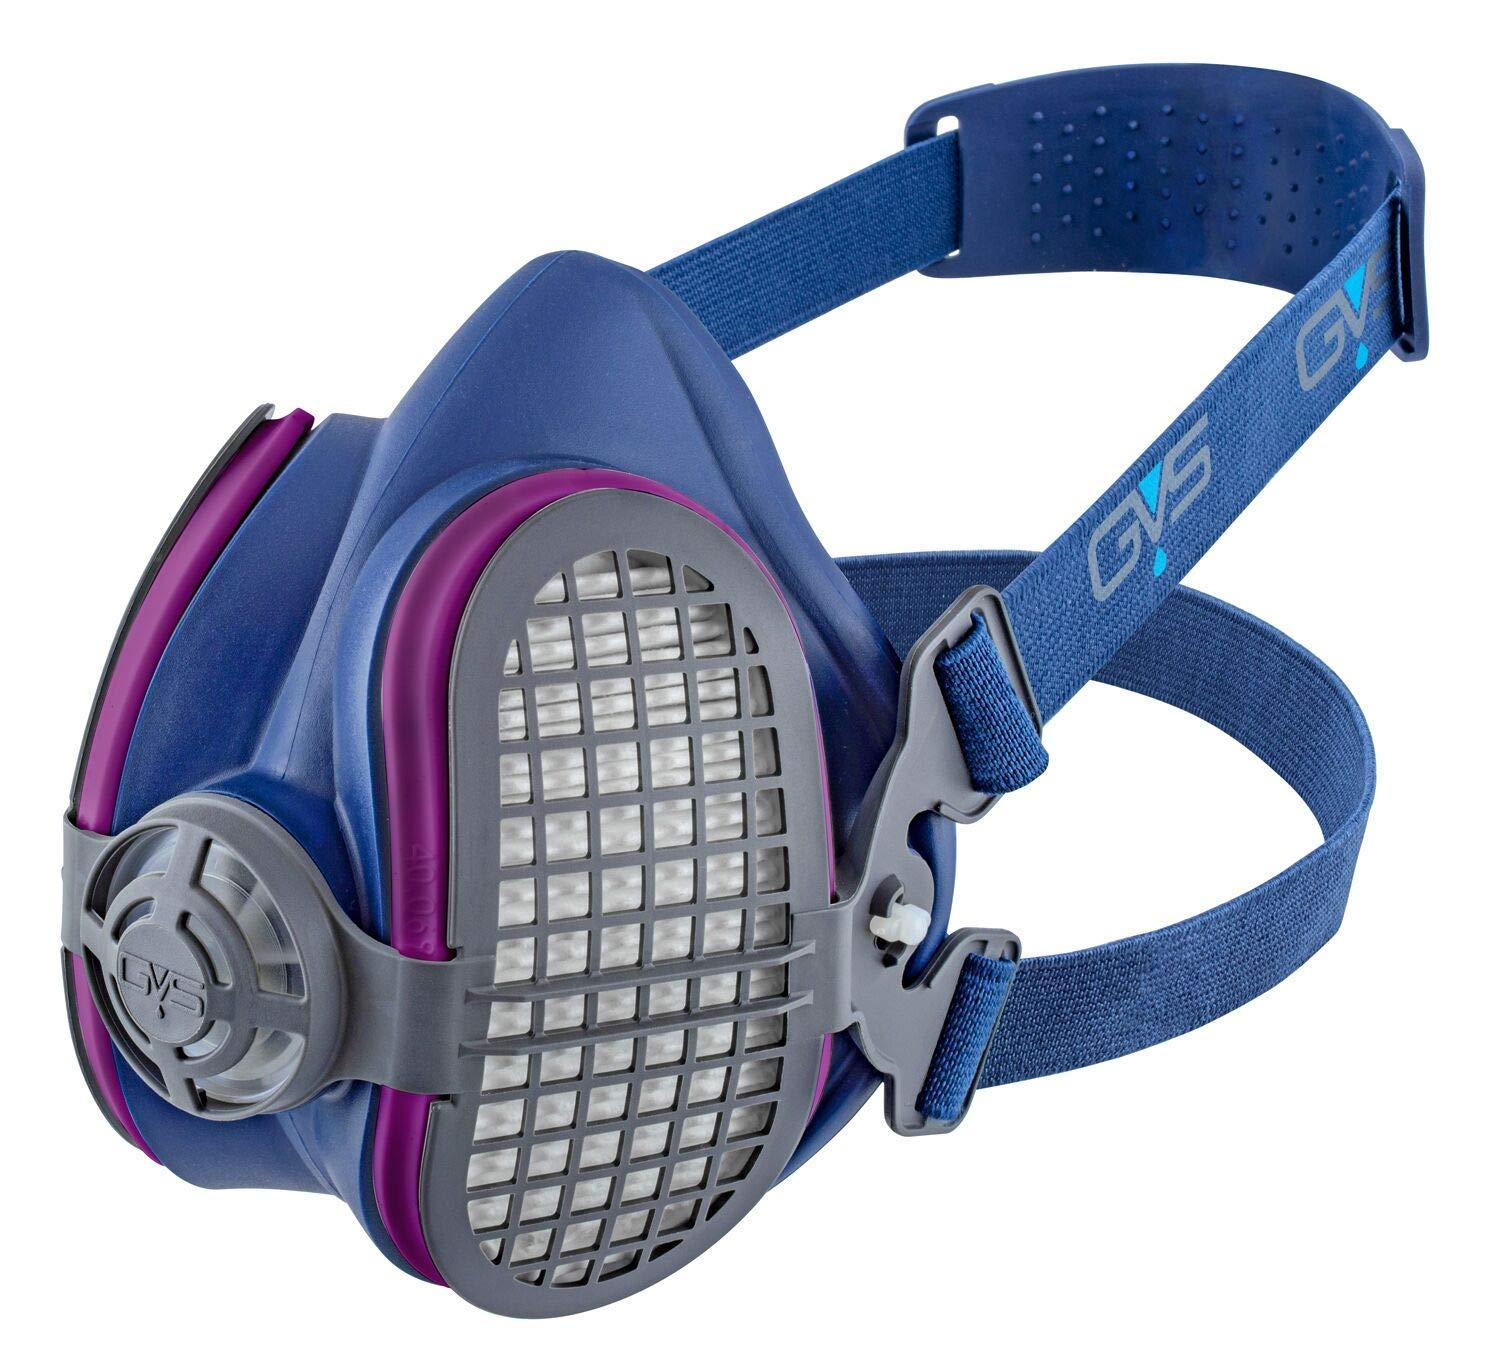 GVS SPR451 Elipse P100 Dust Half Mask Respirator with replaceable and reusable filters included